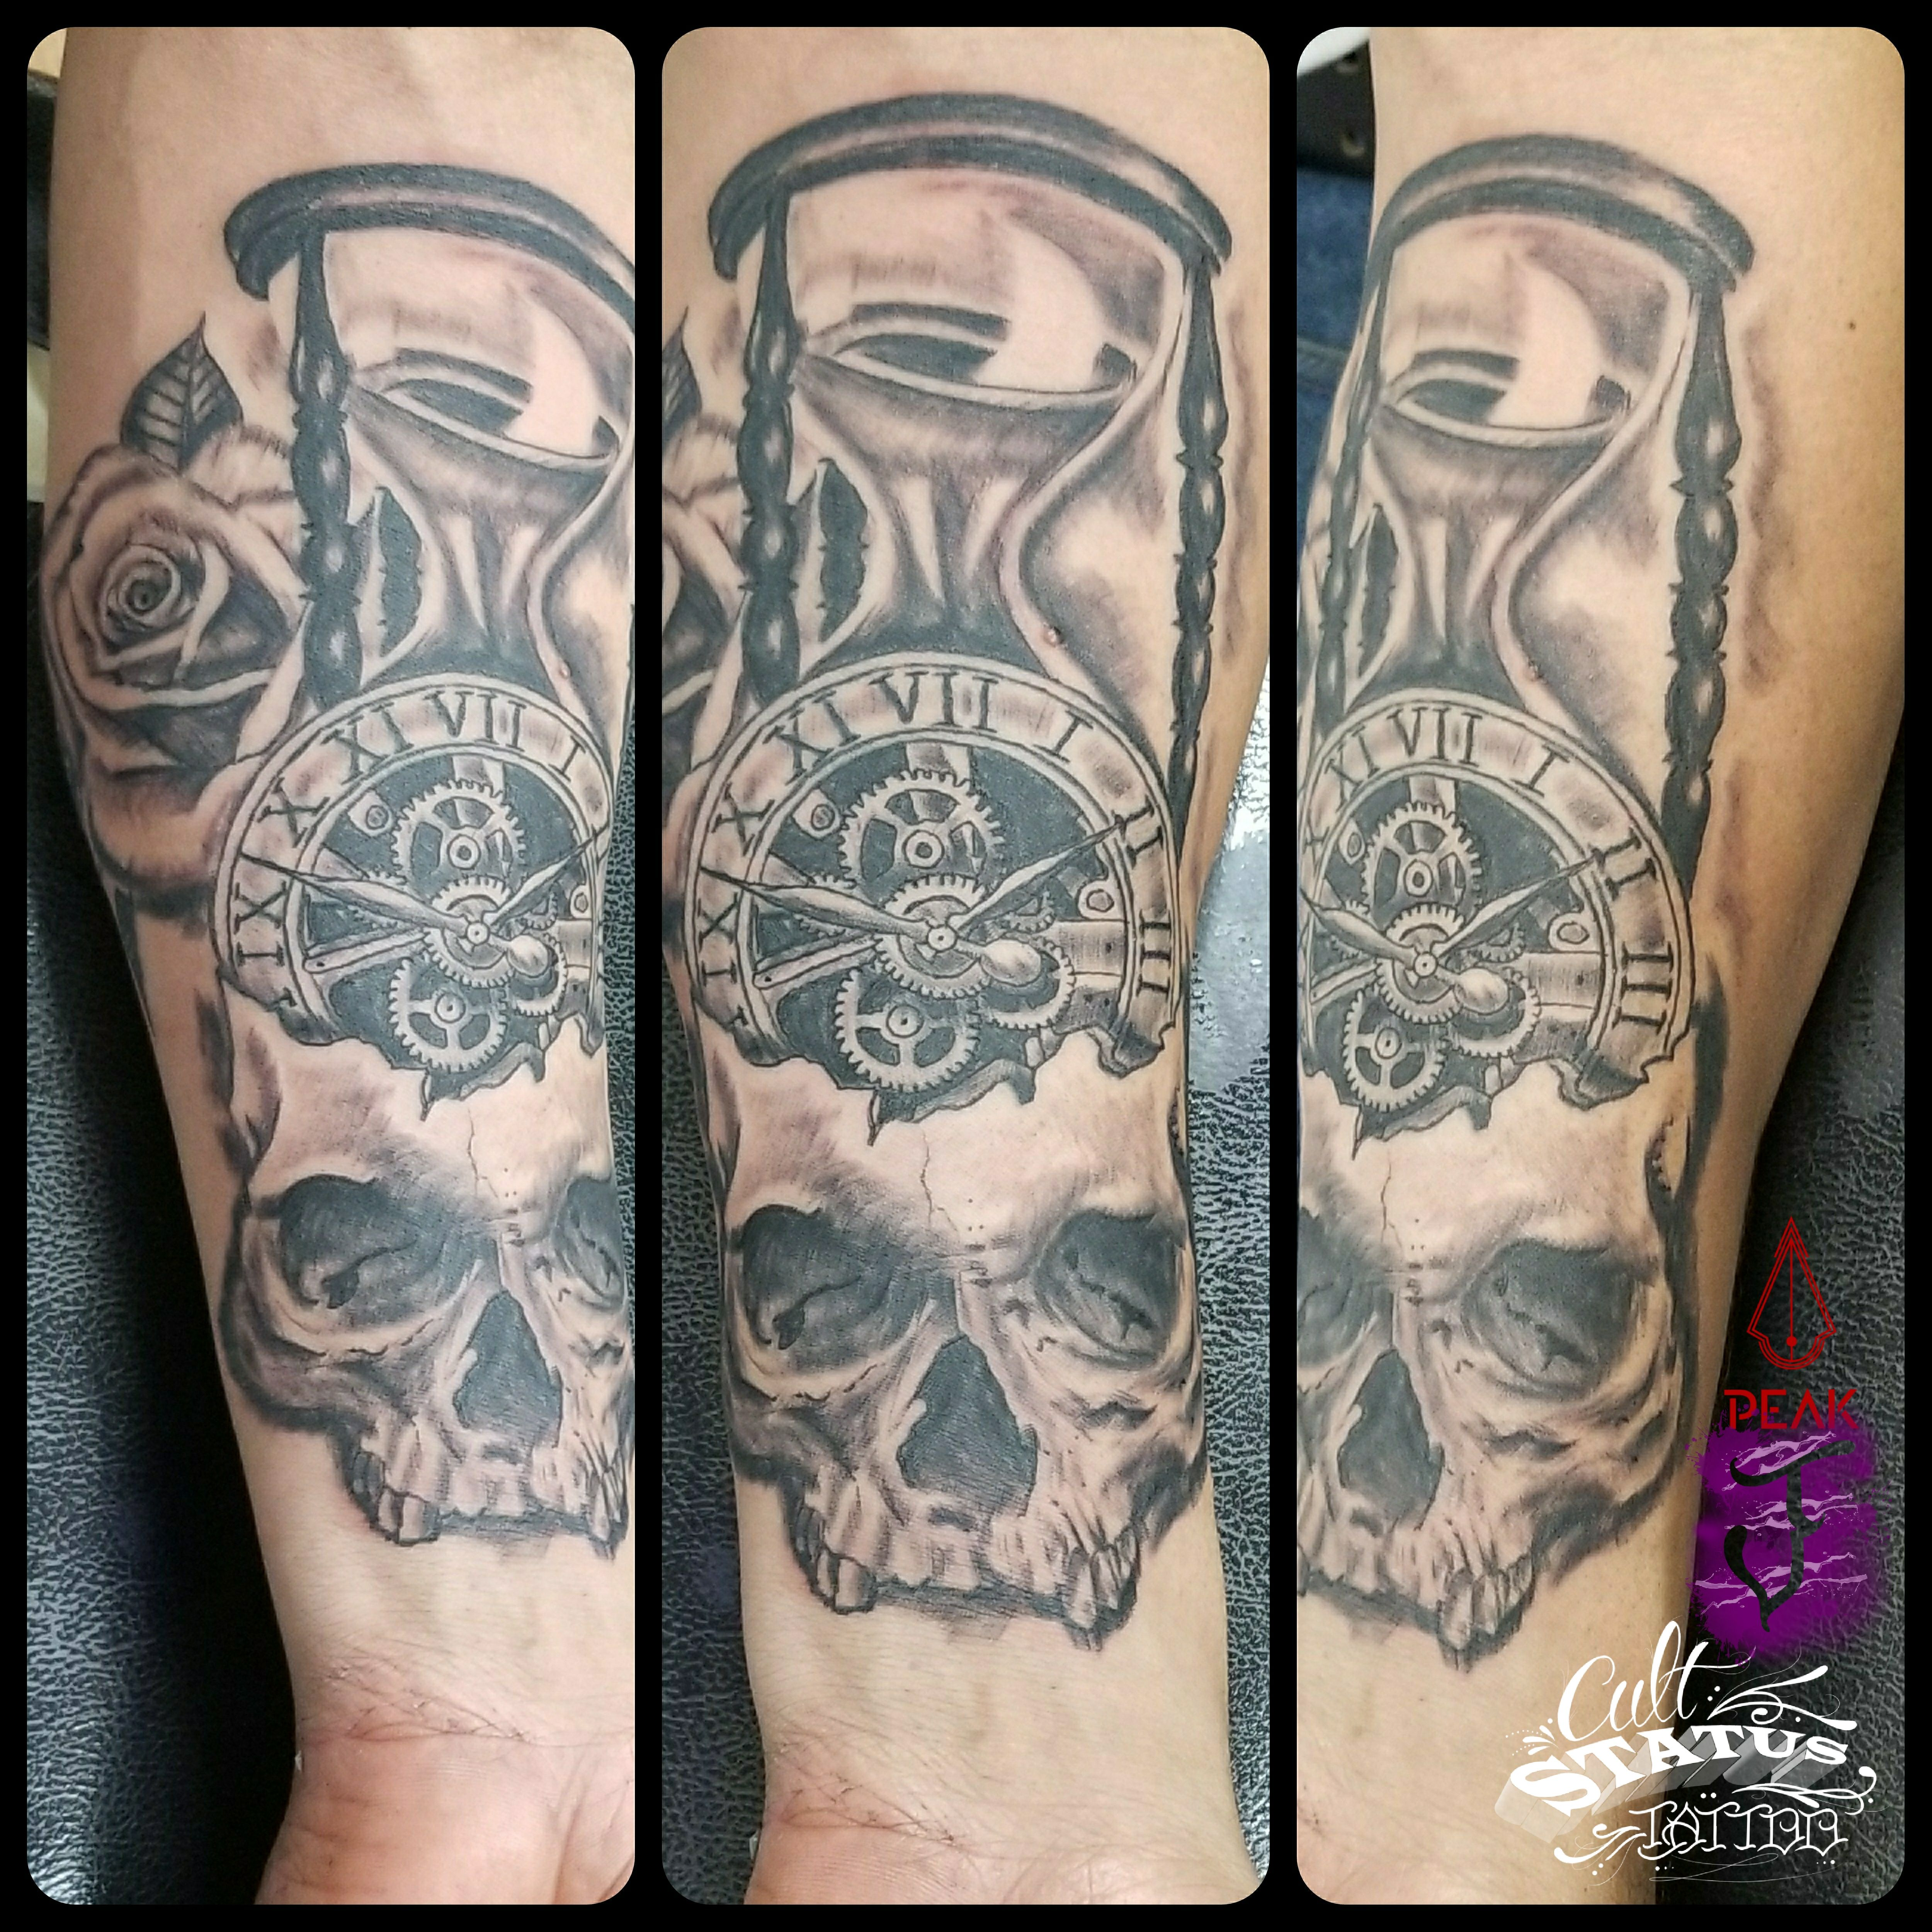 Dont think i need to say what this is tattoo